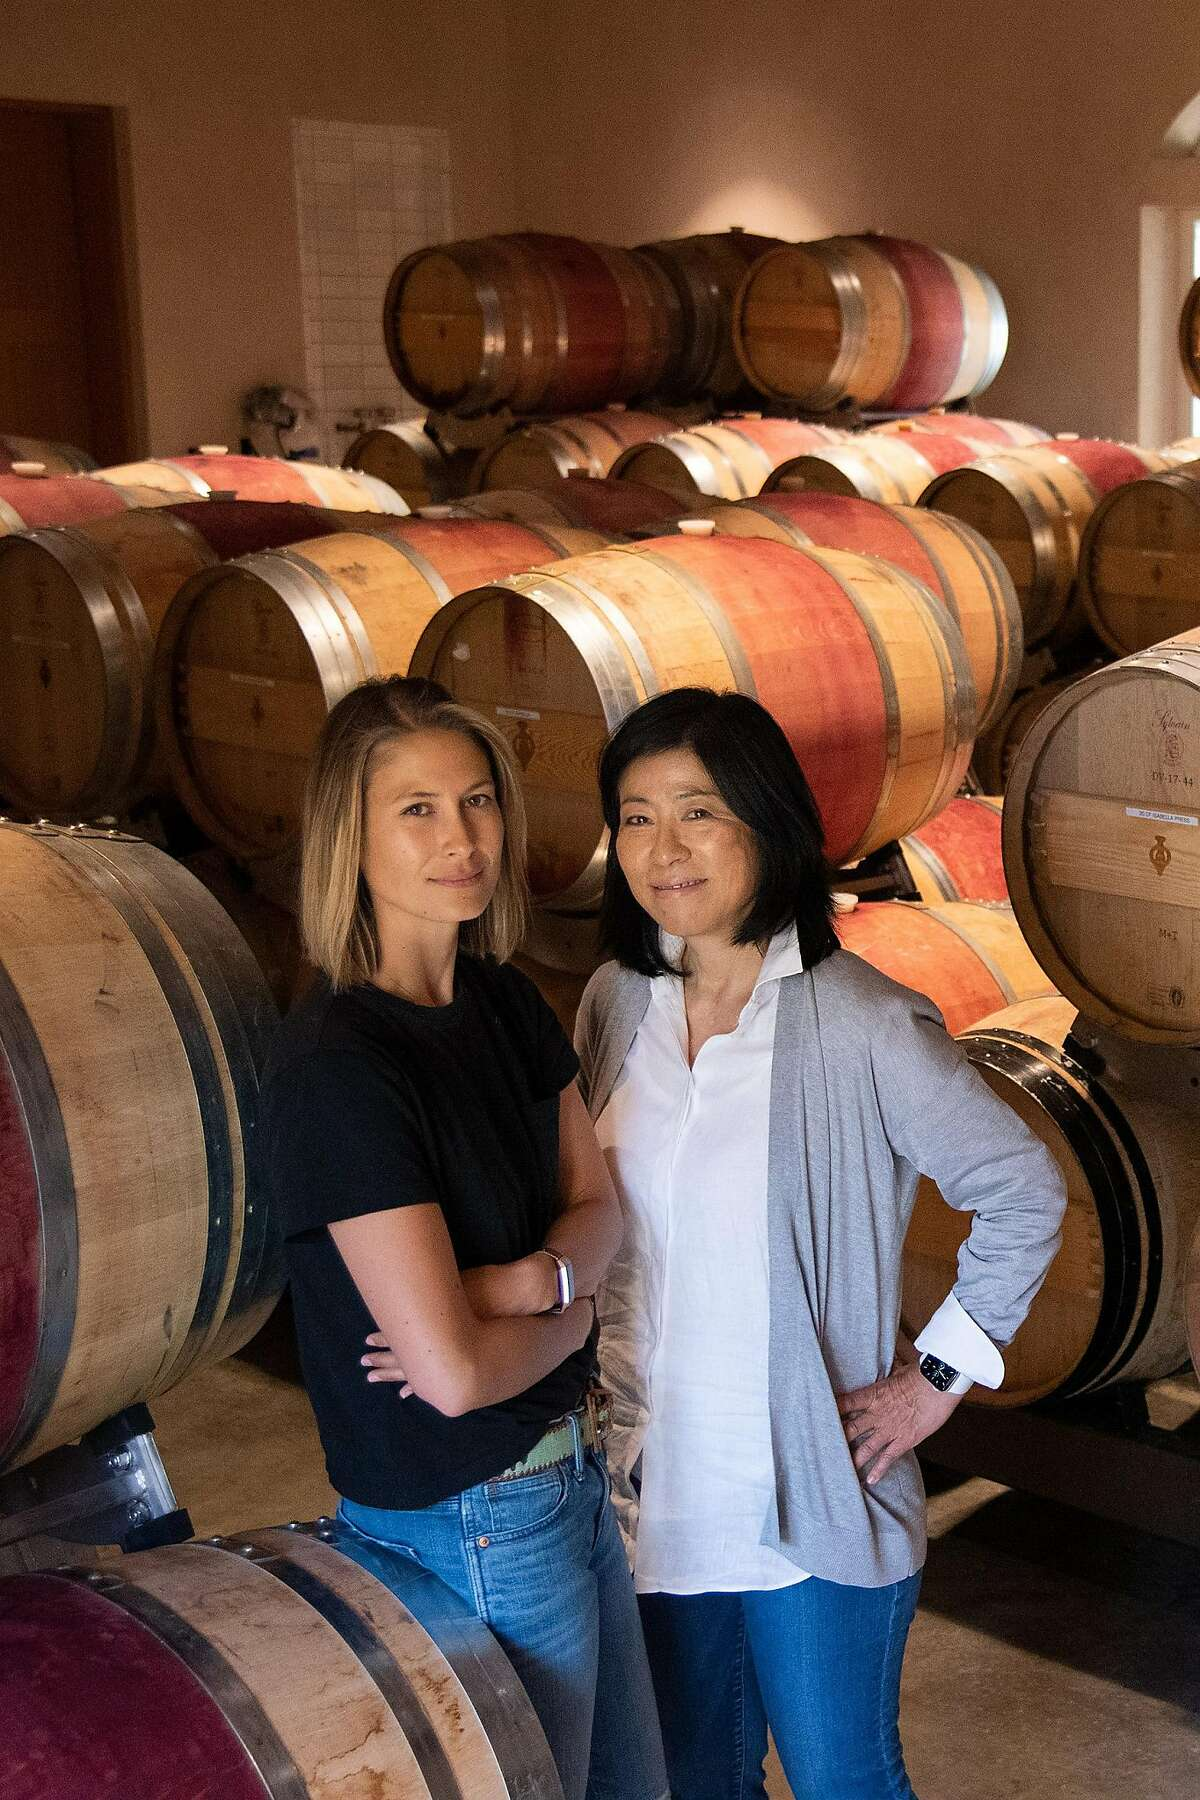 Winery proprietor Naoko Dalla Valle, right, recently promoted her daughter Maya to the position of head winemaker.